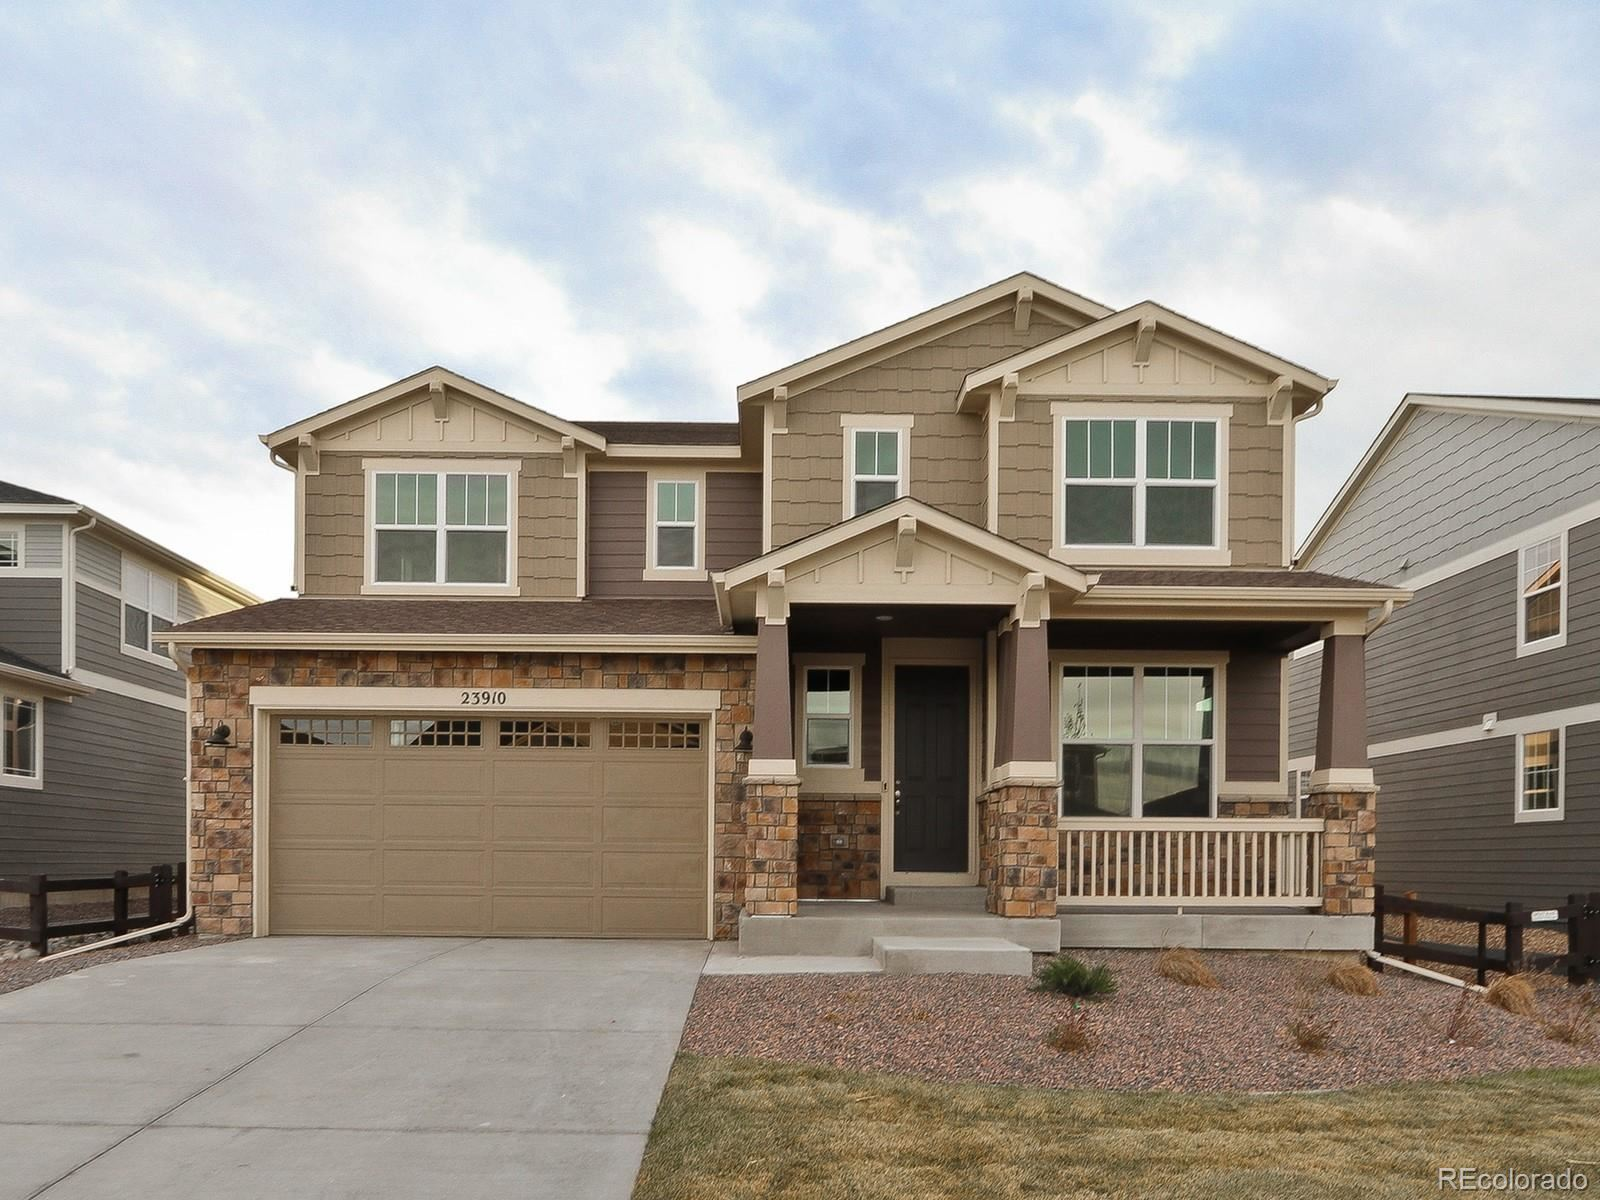 23910 E Minnow Drive, Aurora, CO 80016 - #: 8835126